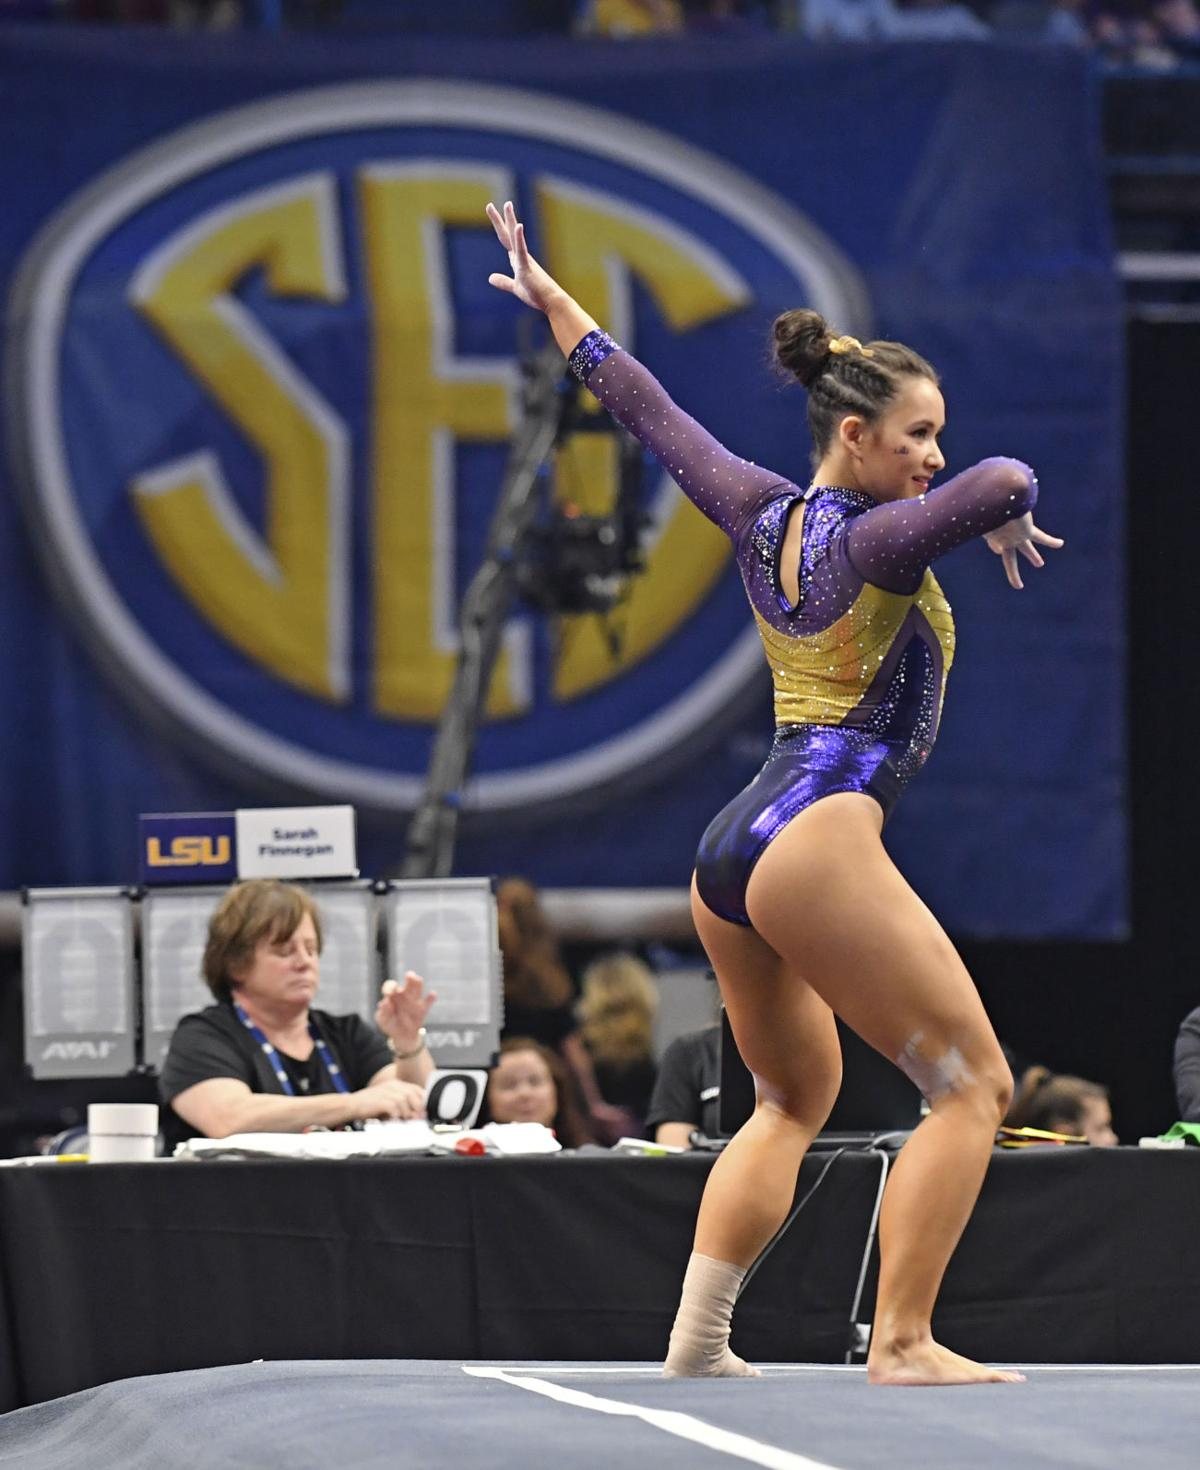 perfect 10 routine that clinched LSU